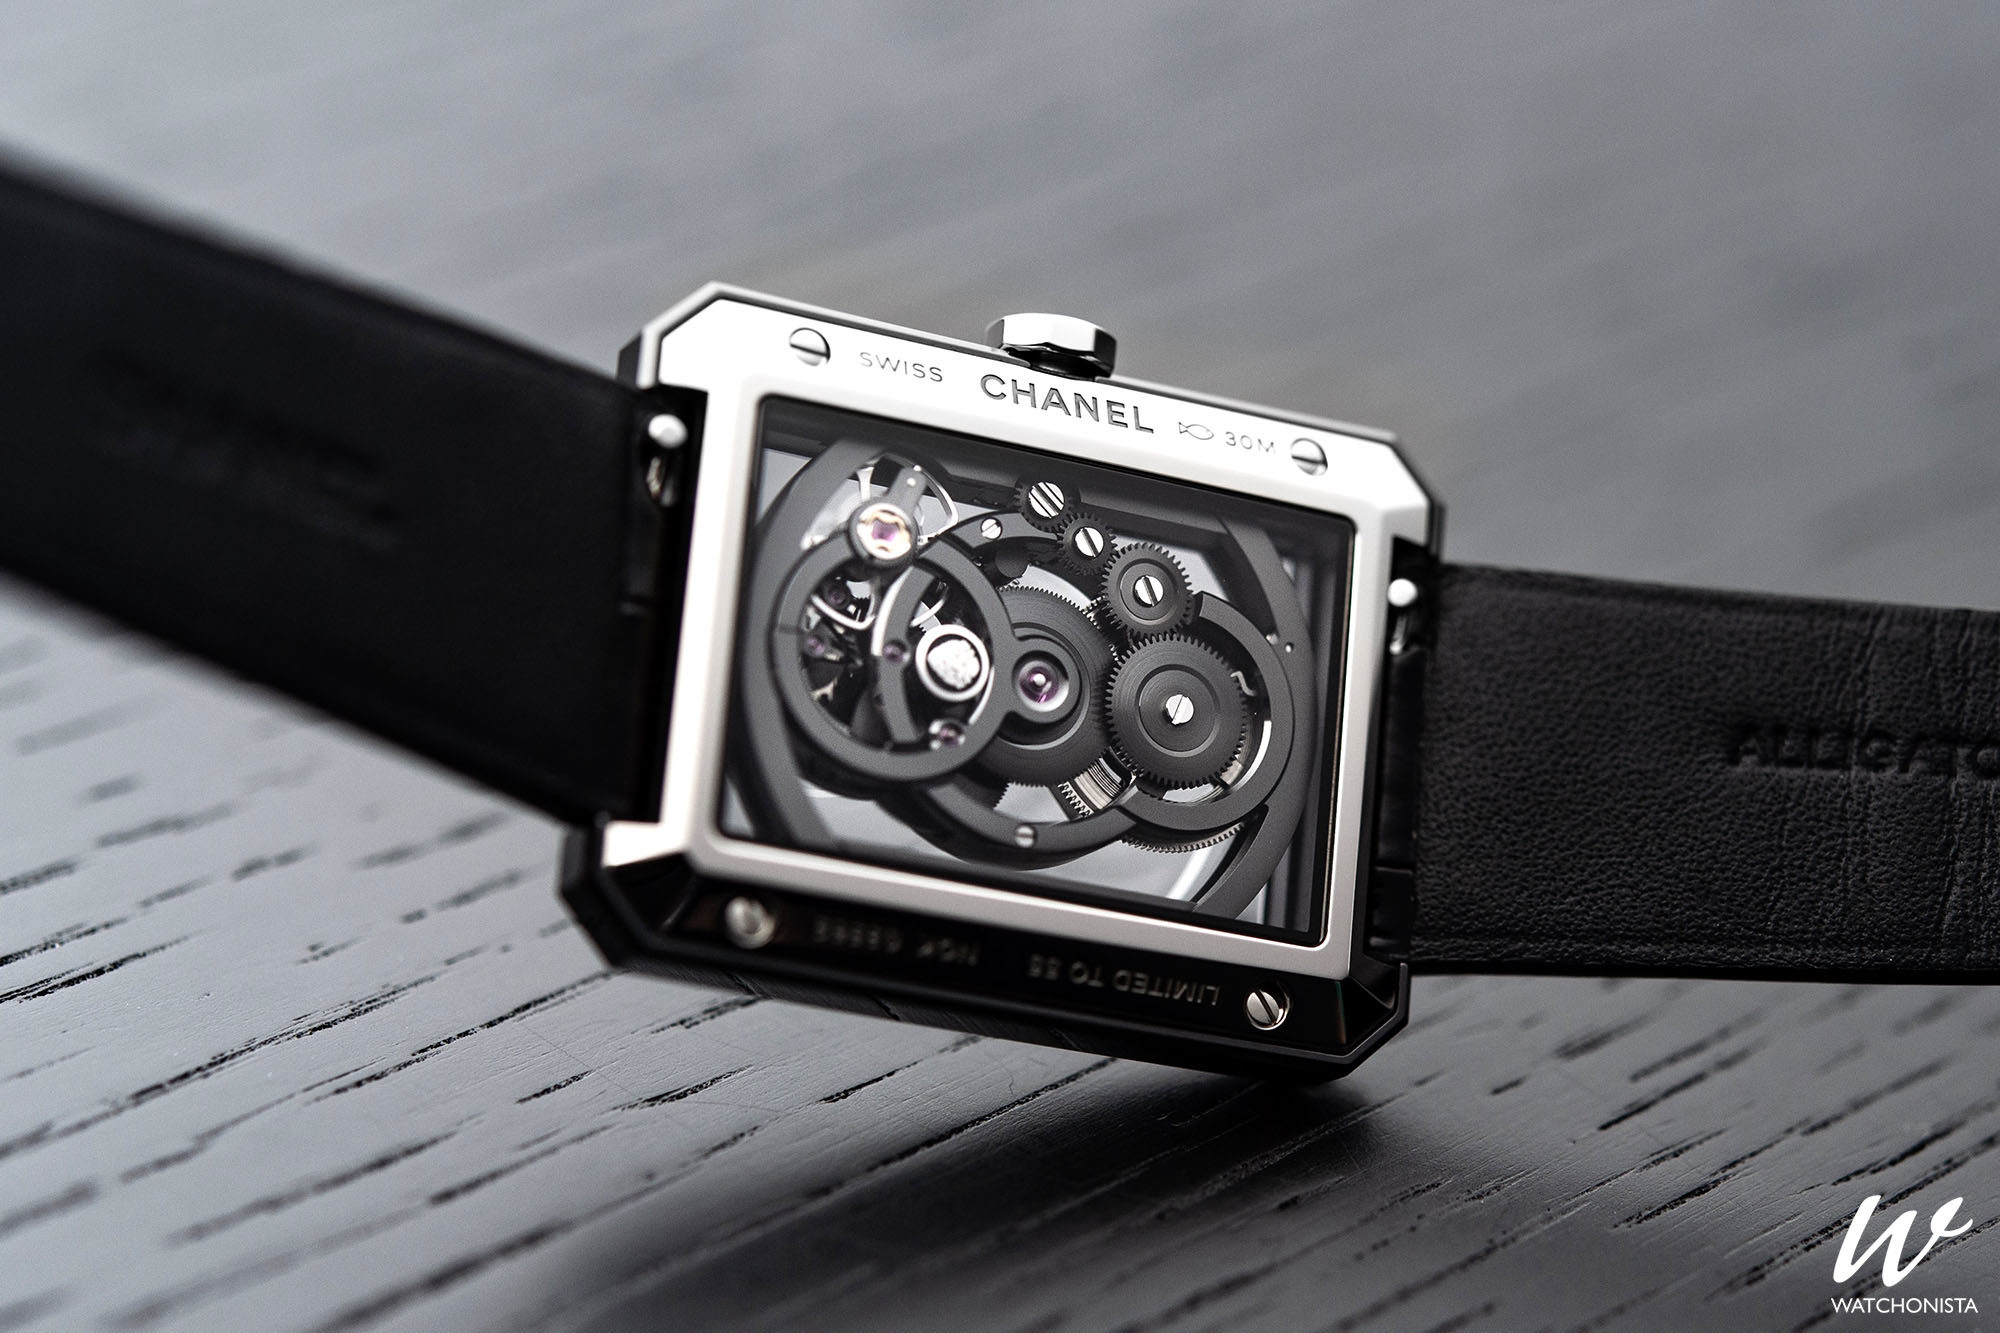 Baselworld 2019: Chanel's New J12 Movement For The Future